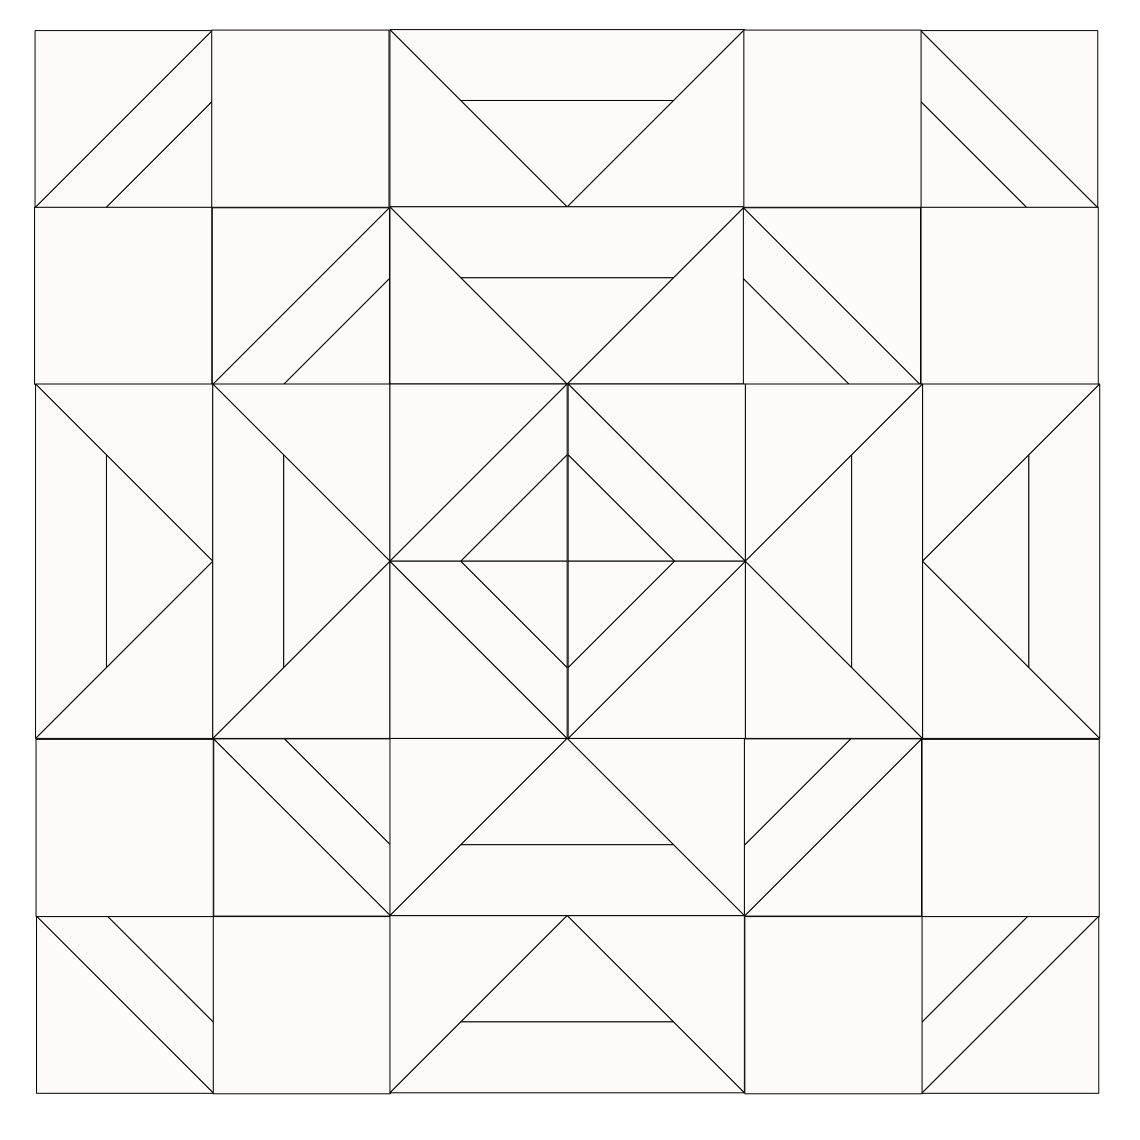 Quilt Patterns And Templates : Imaginesque: Quilt Block 33: Pattern and Templates